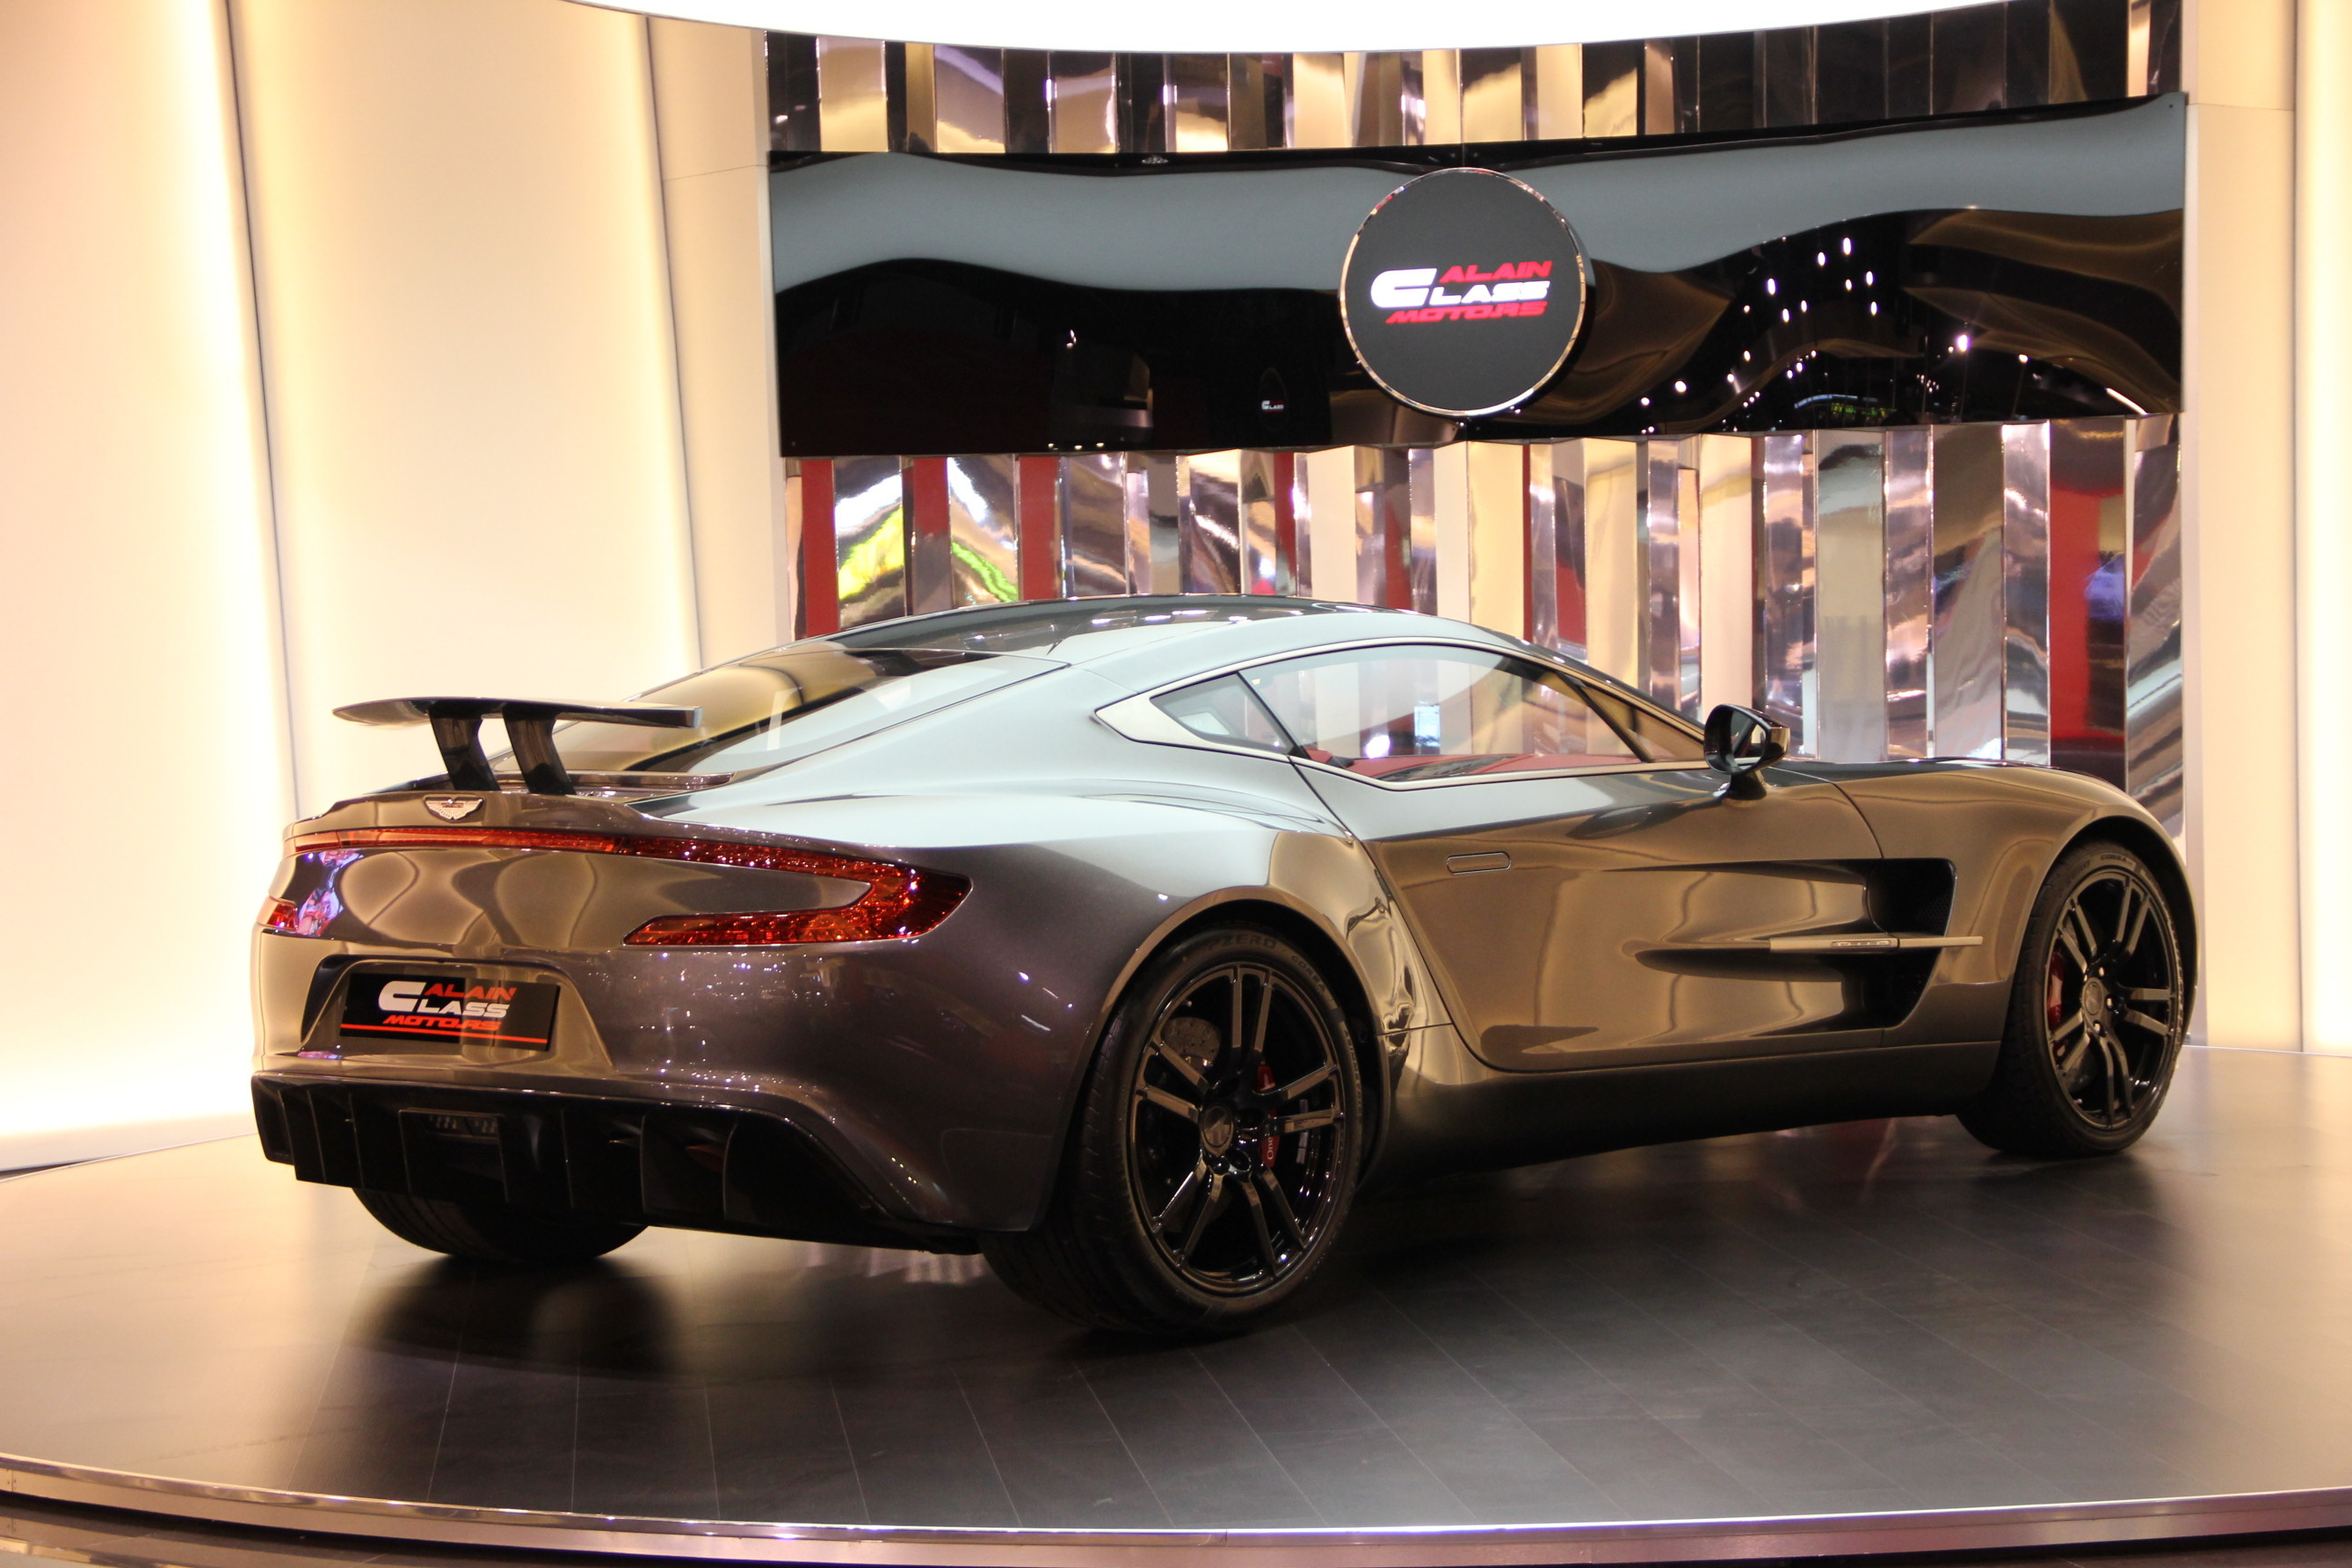 2013 aston martin one 77 q series by aston martin review top speed. Black Bedroom Furniture Sets. Home Design Ideas